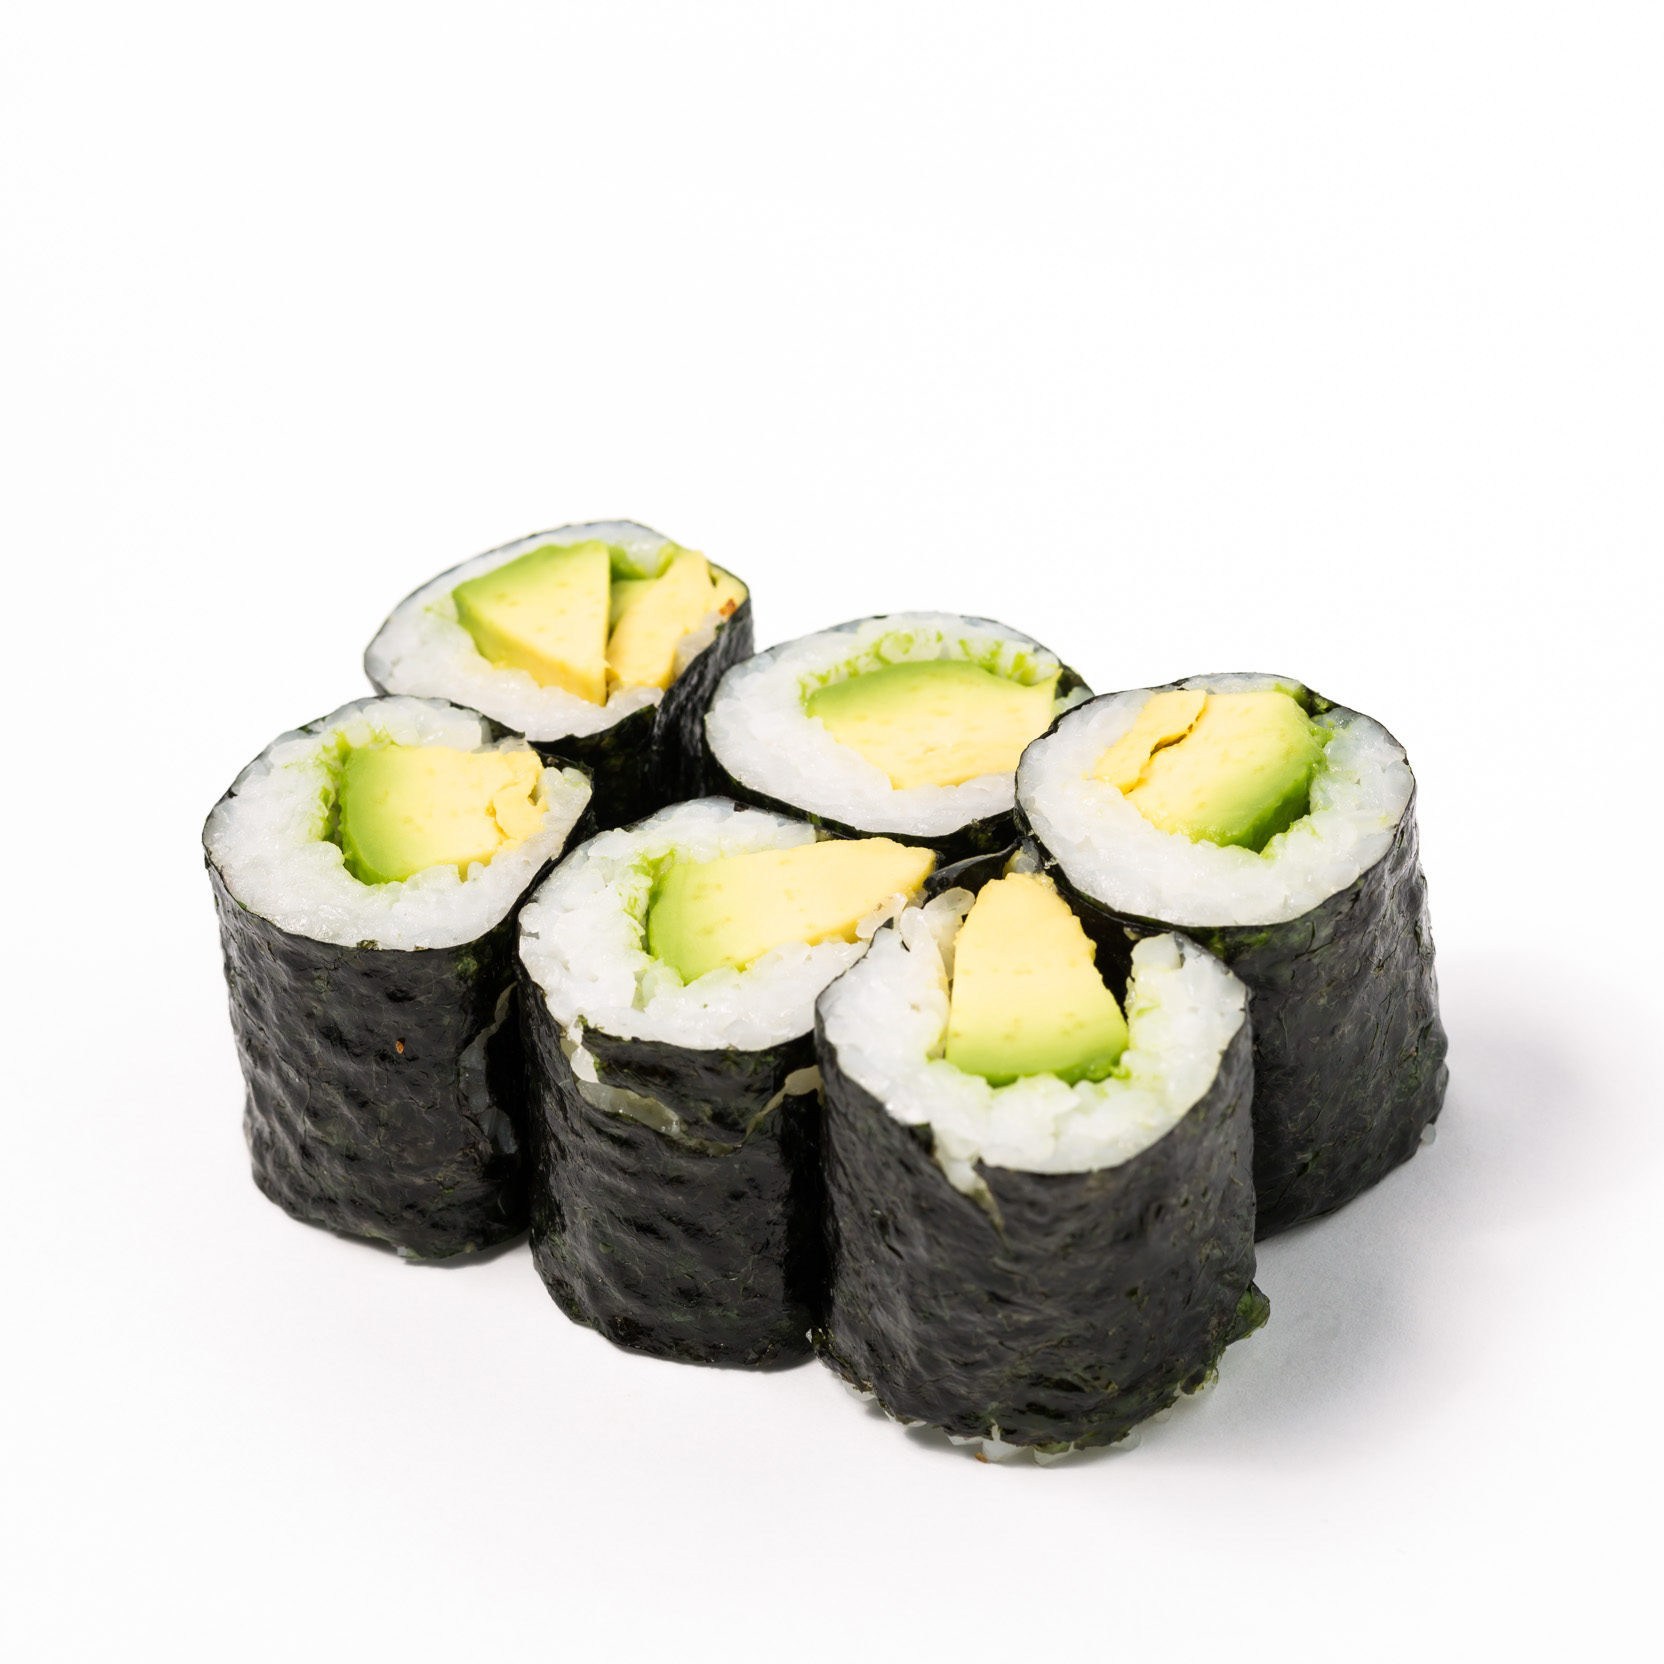 Avocado Small Roll - Vege